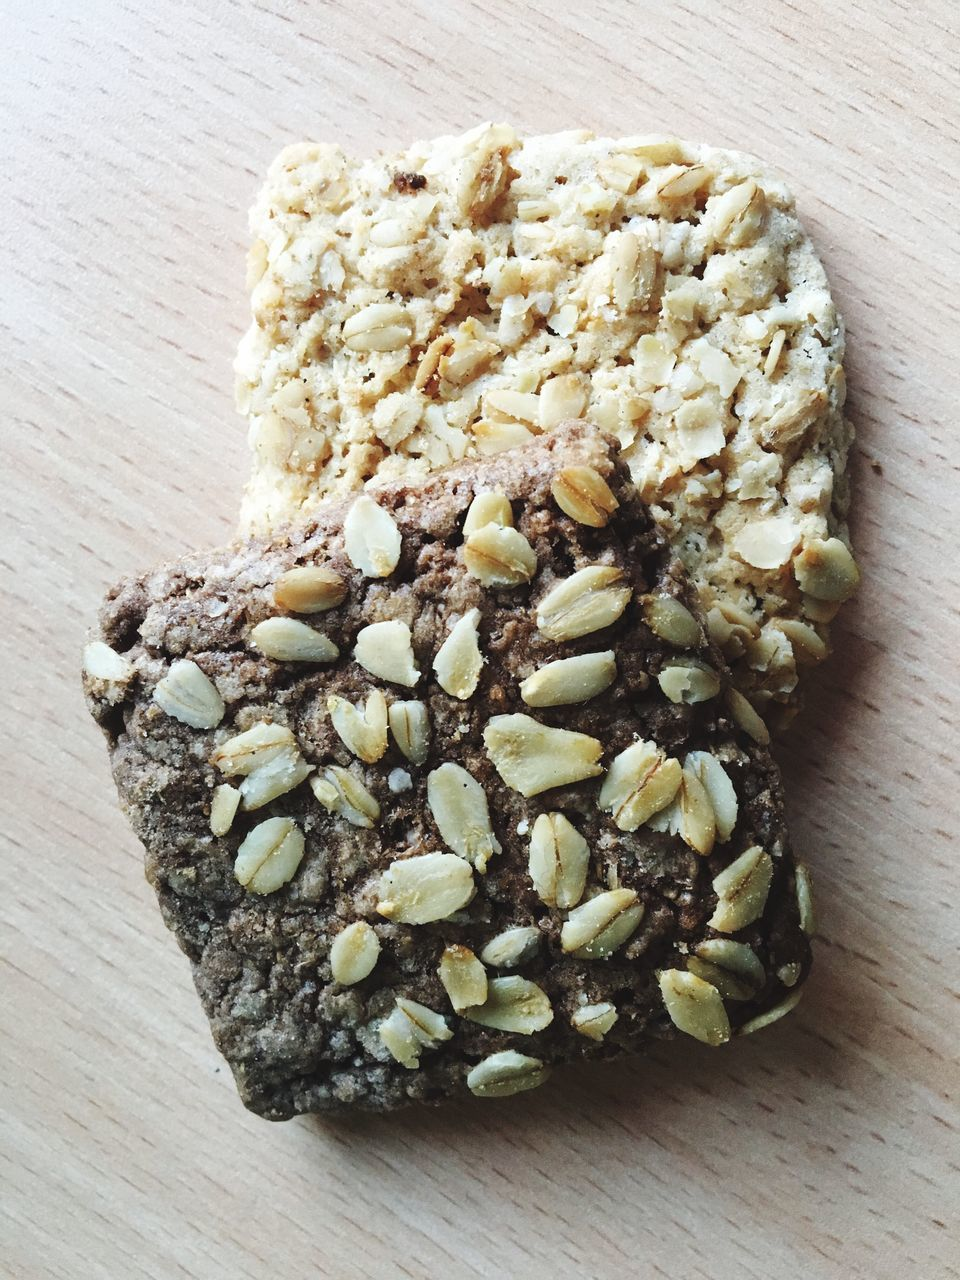 food and drink, food, table, no people, healthy eating, freshness, indoors, close-up, wood - material, sweet food, ready-to-eat, protein bar, oat flake, day